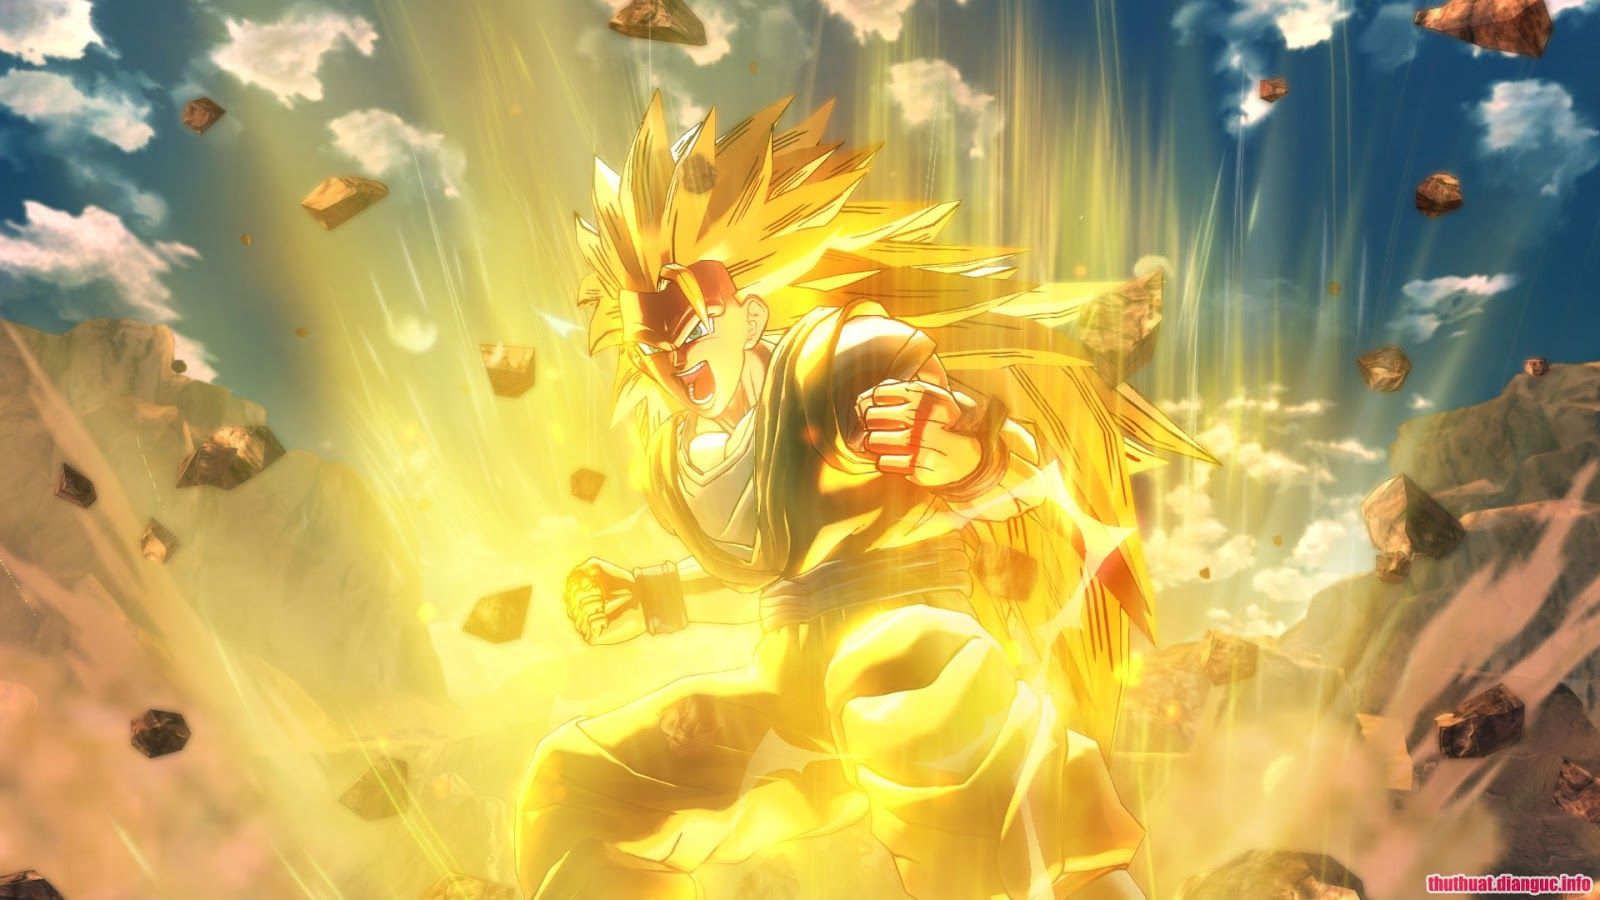 Tải Game Dragon Ball Xenoverse 2 Full Crack, Dragon Ball Xenoverse 2 Full Crack ISO, Tải game Dragon Ball Xenoverse 2 Deluxe Edition miễn phí